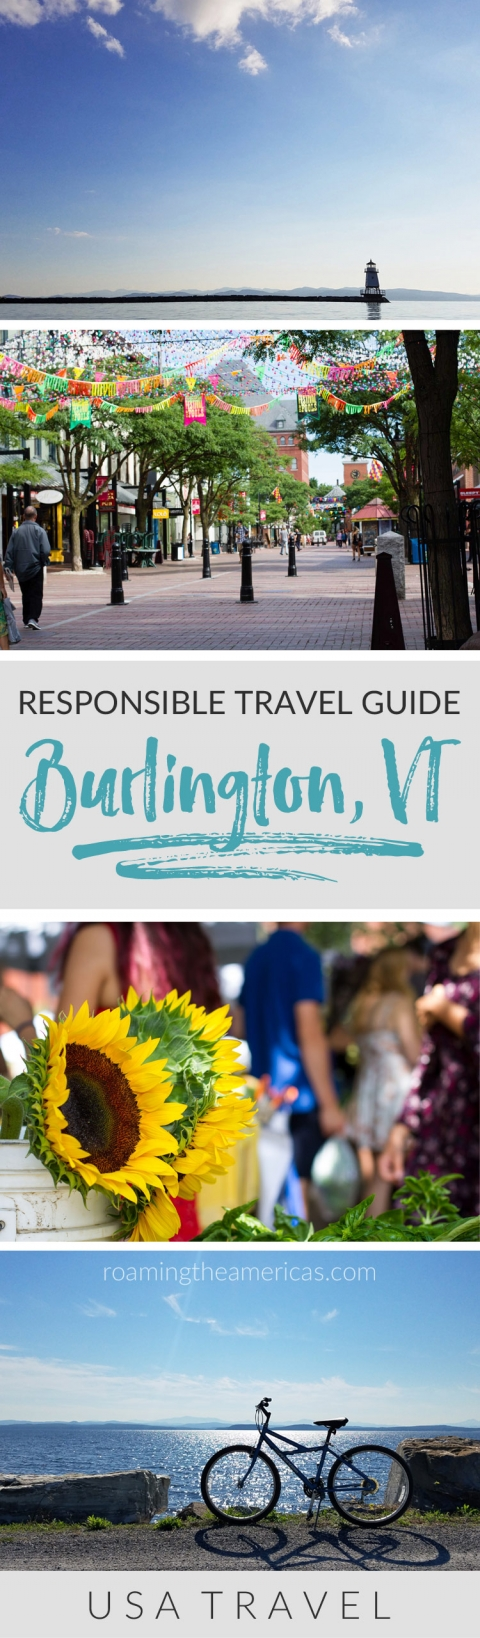 Vermont vacation | Vermont travel | Where to stay, eat, and things to do in Burlington, Vermont [USA]! Celebrate the Year of Sustainable Tourism with this responsible travel guide from @roamtheamericas #vermont #newengland #bucketlist #ecotourism